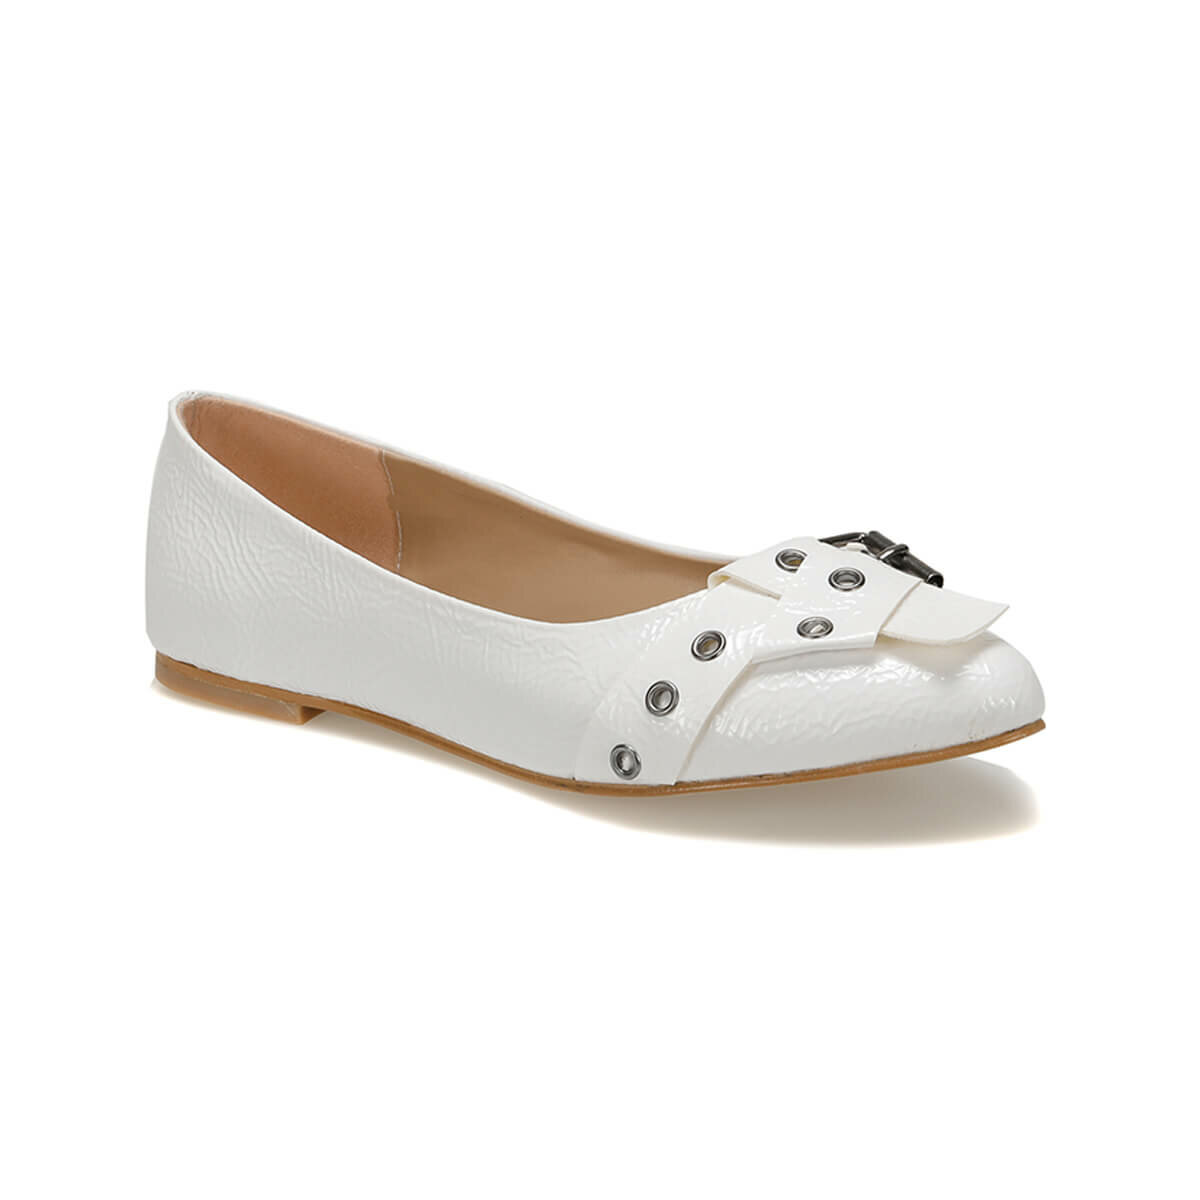 FLO LUDO01Z JAPANNED LEATHER White Women 'S Ballerina BUTIGO